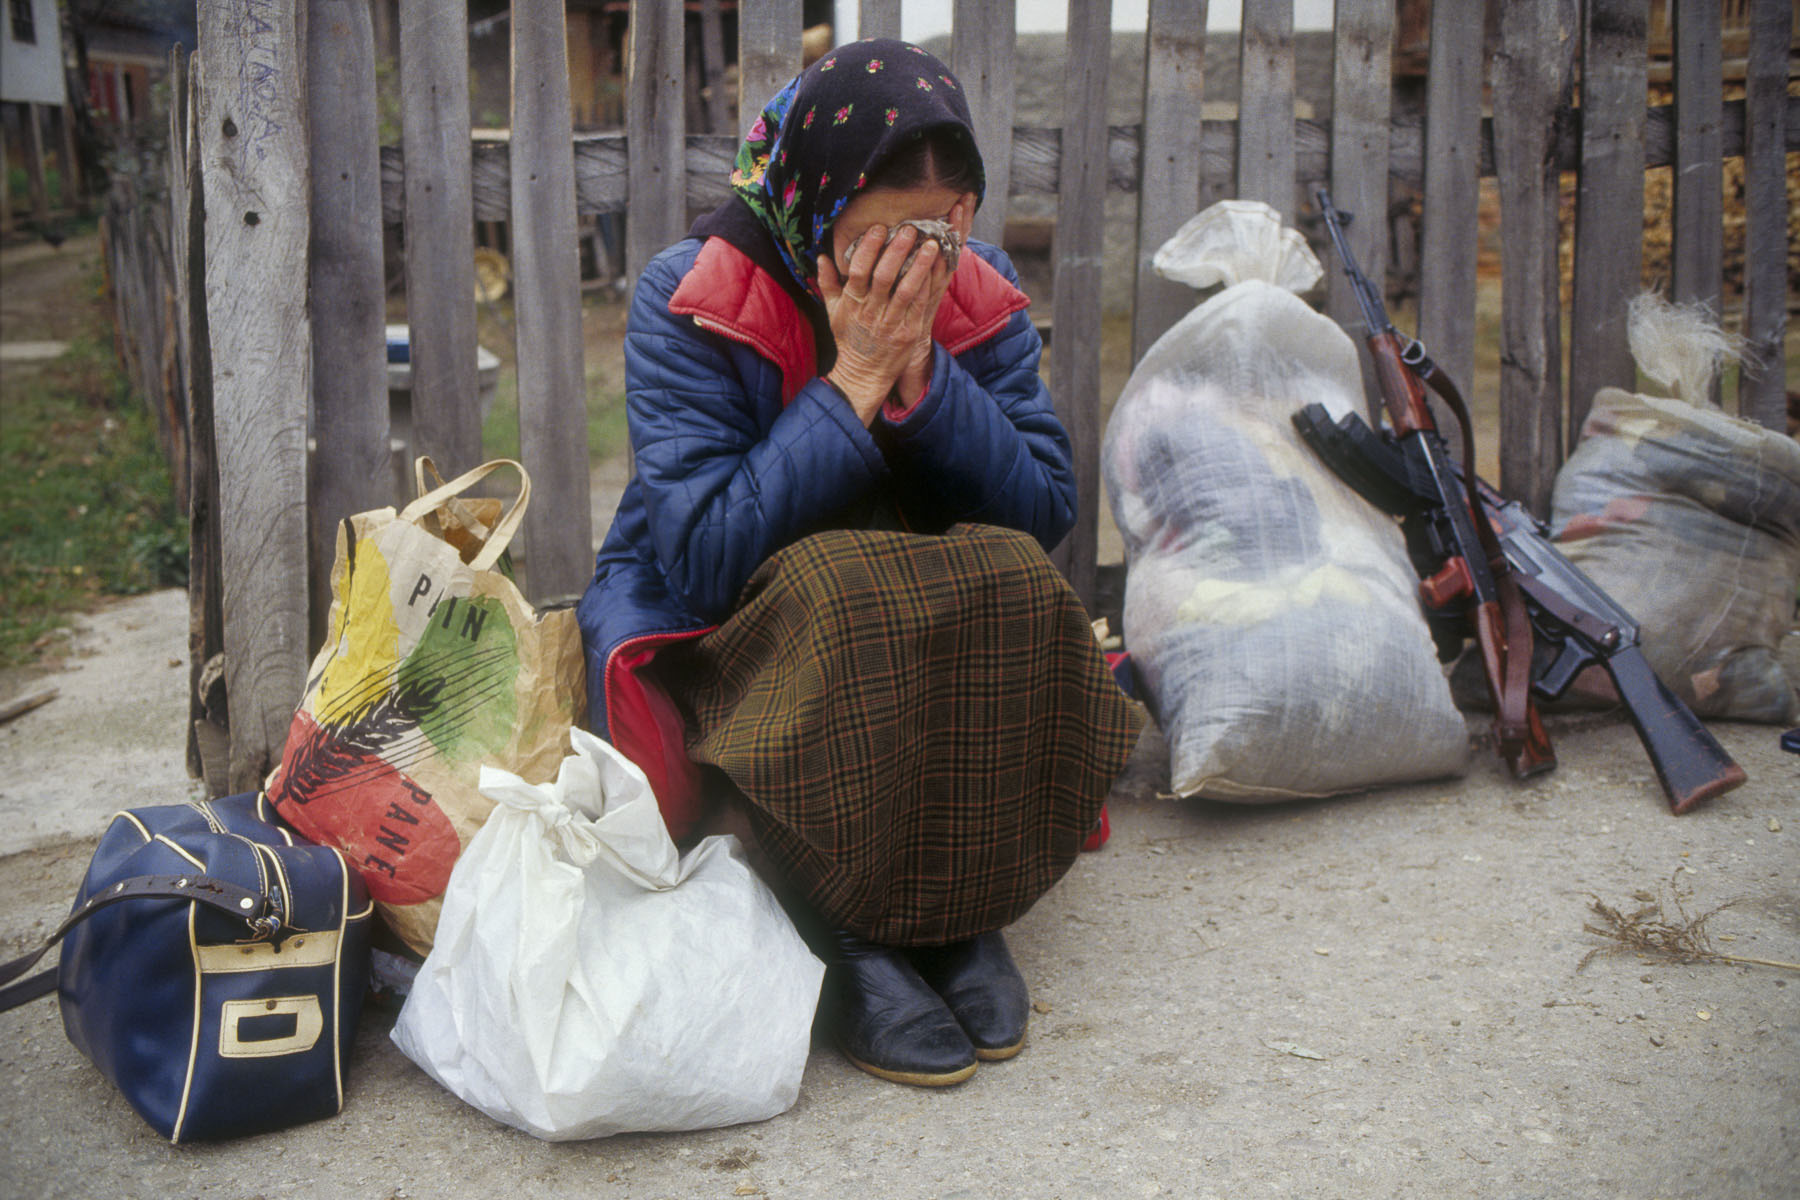 Bosnian refugee after the capture of her village by the Serb militiamen in November 1992